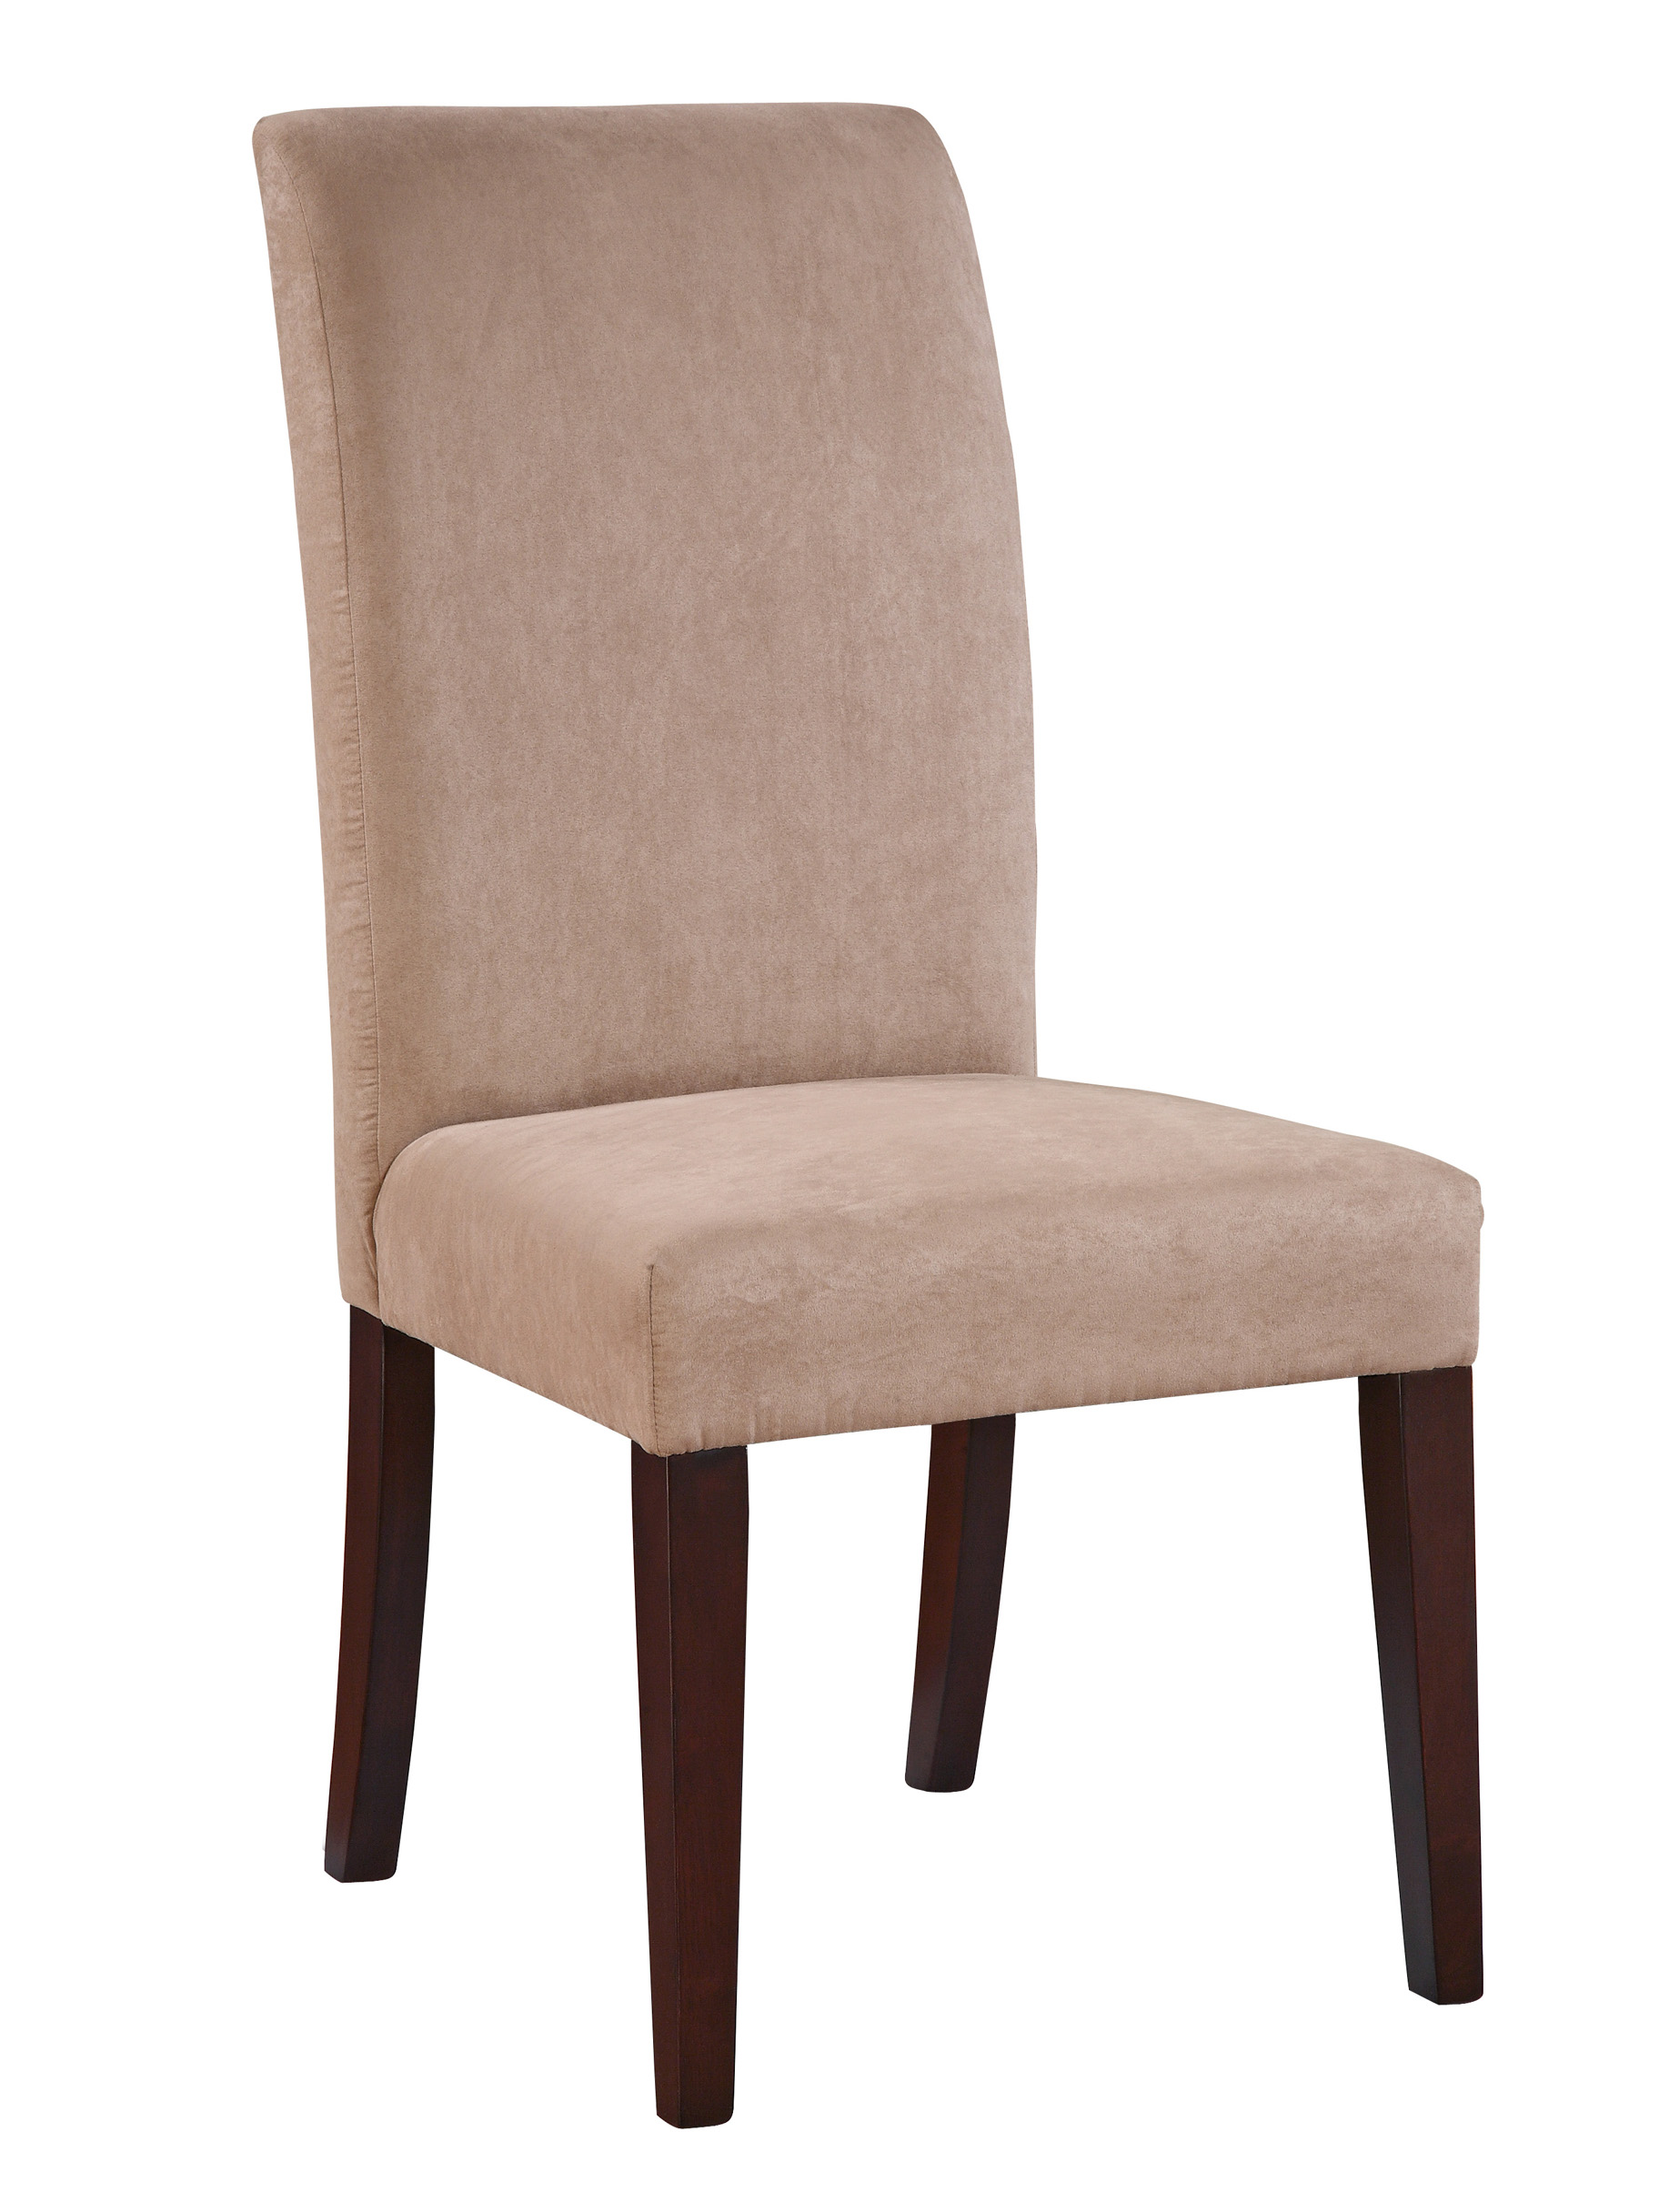 kmart kitchen chairs mobile home cabinets discount beige dining chair